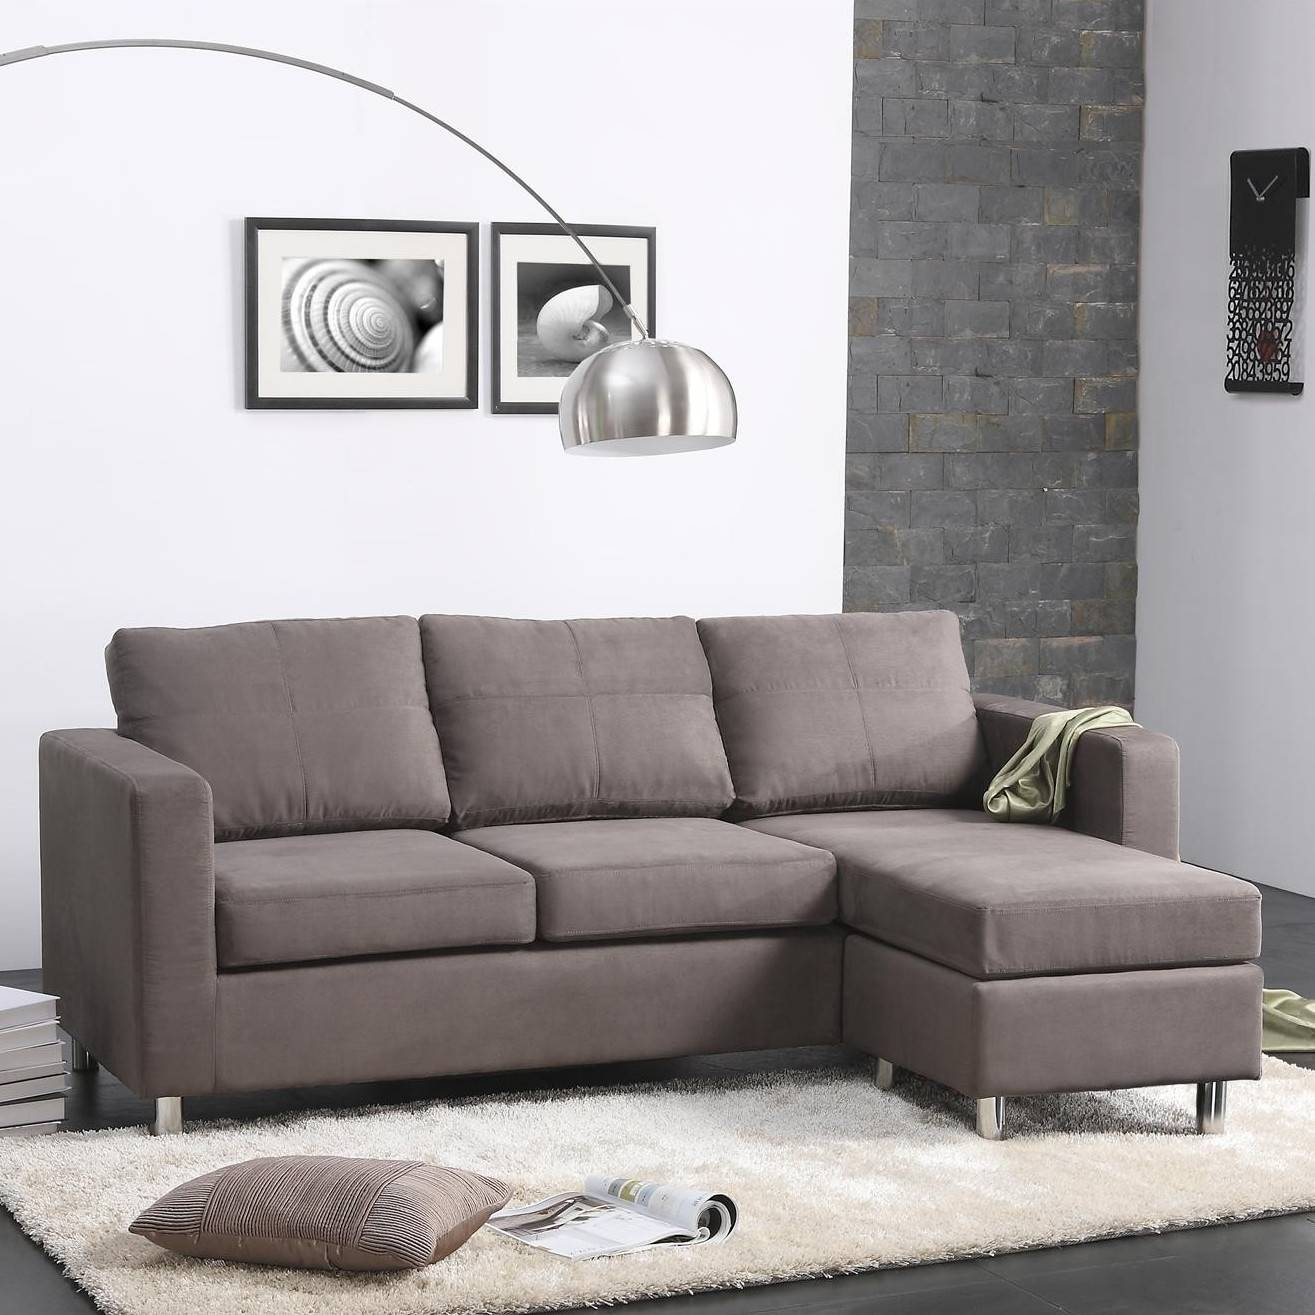 Small Spaces Configurable Sectional Sofa | Roselawnlutheran with regard to Small Sectional Sofa (Image 25 of 30)